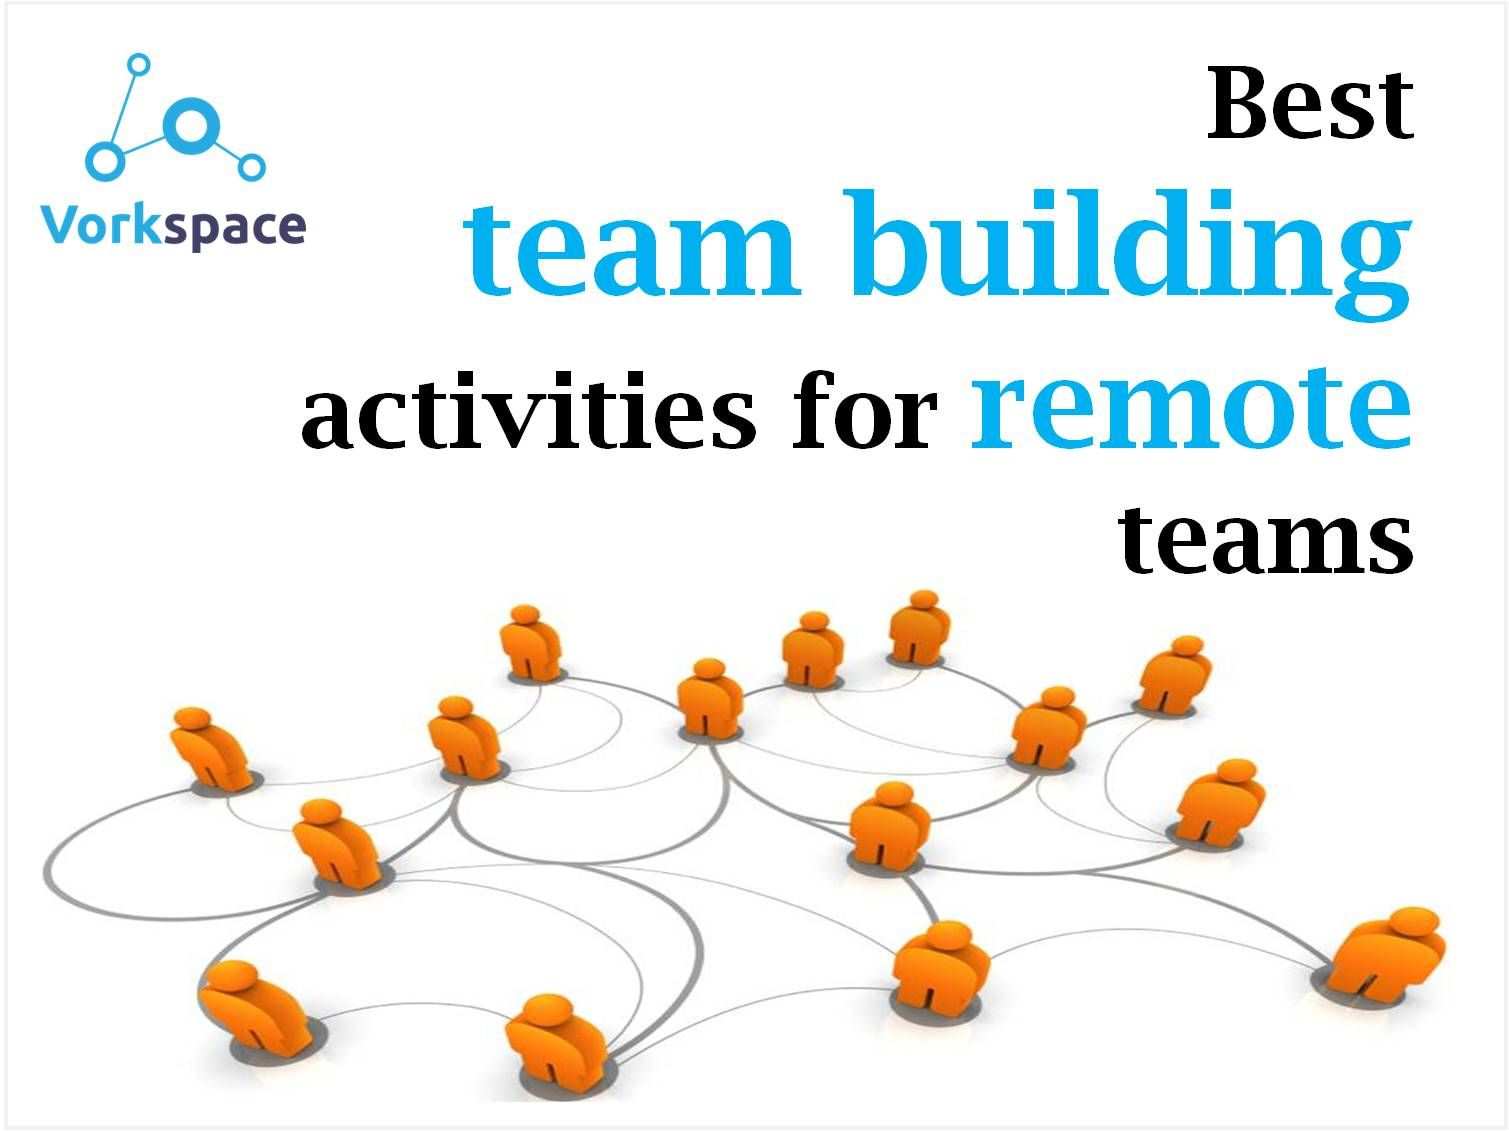 best team building activities for remote teams | team building